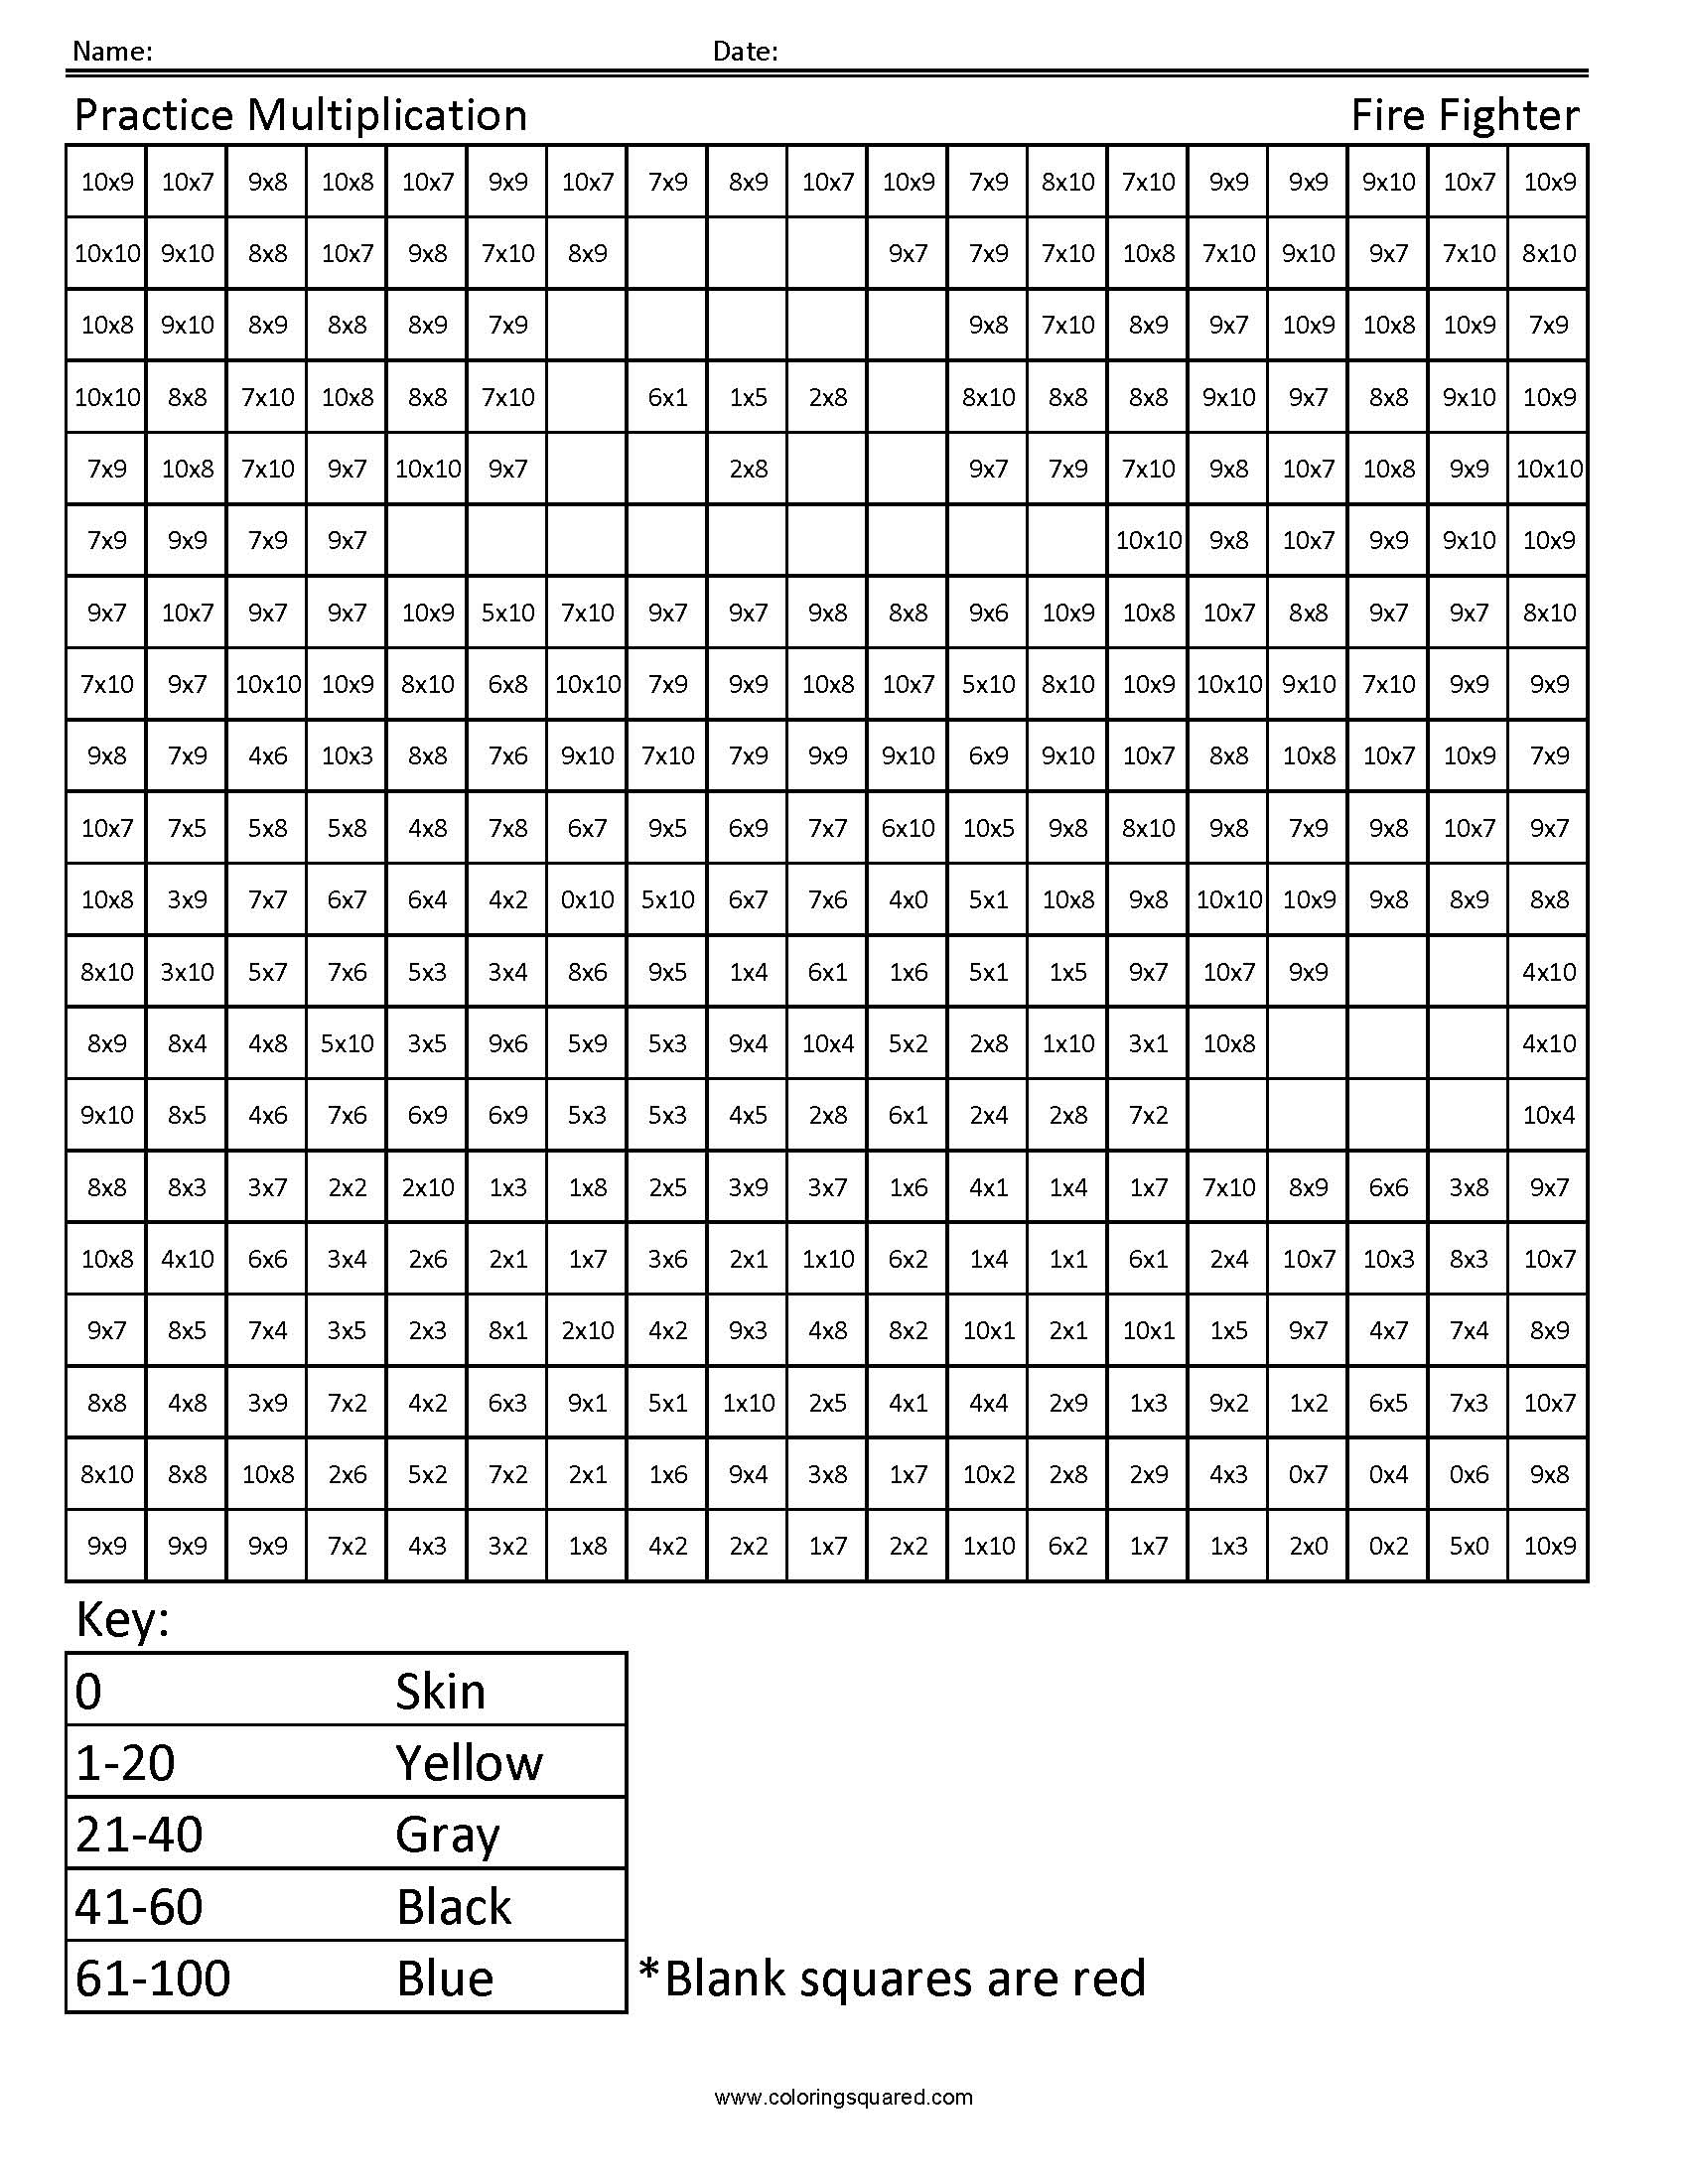 Worksheet 4th Grade Math Facts 4g1 multiplication firefighter 4th grade math coloring squared image information